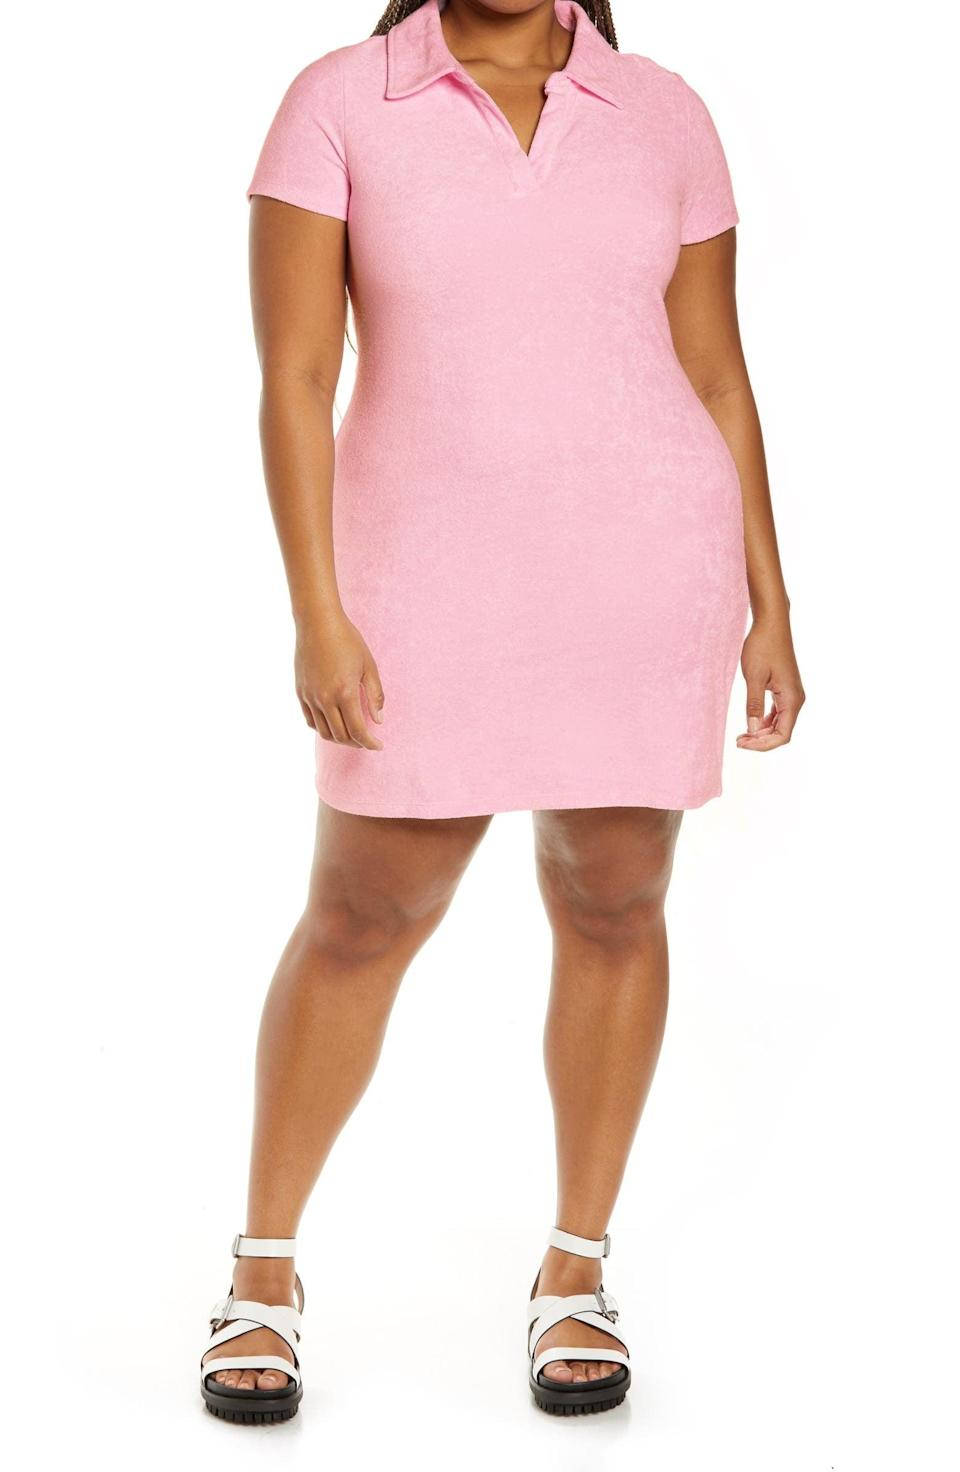 <p>This <span>BP. Polo Terry Cloth Minidress</span> ($39) will keep you looking sporty and cool.</p>